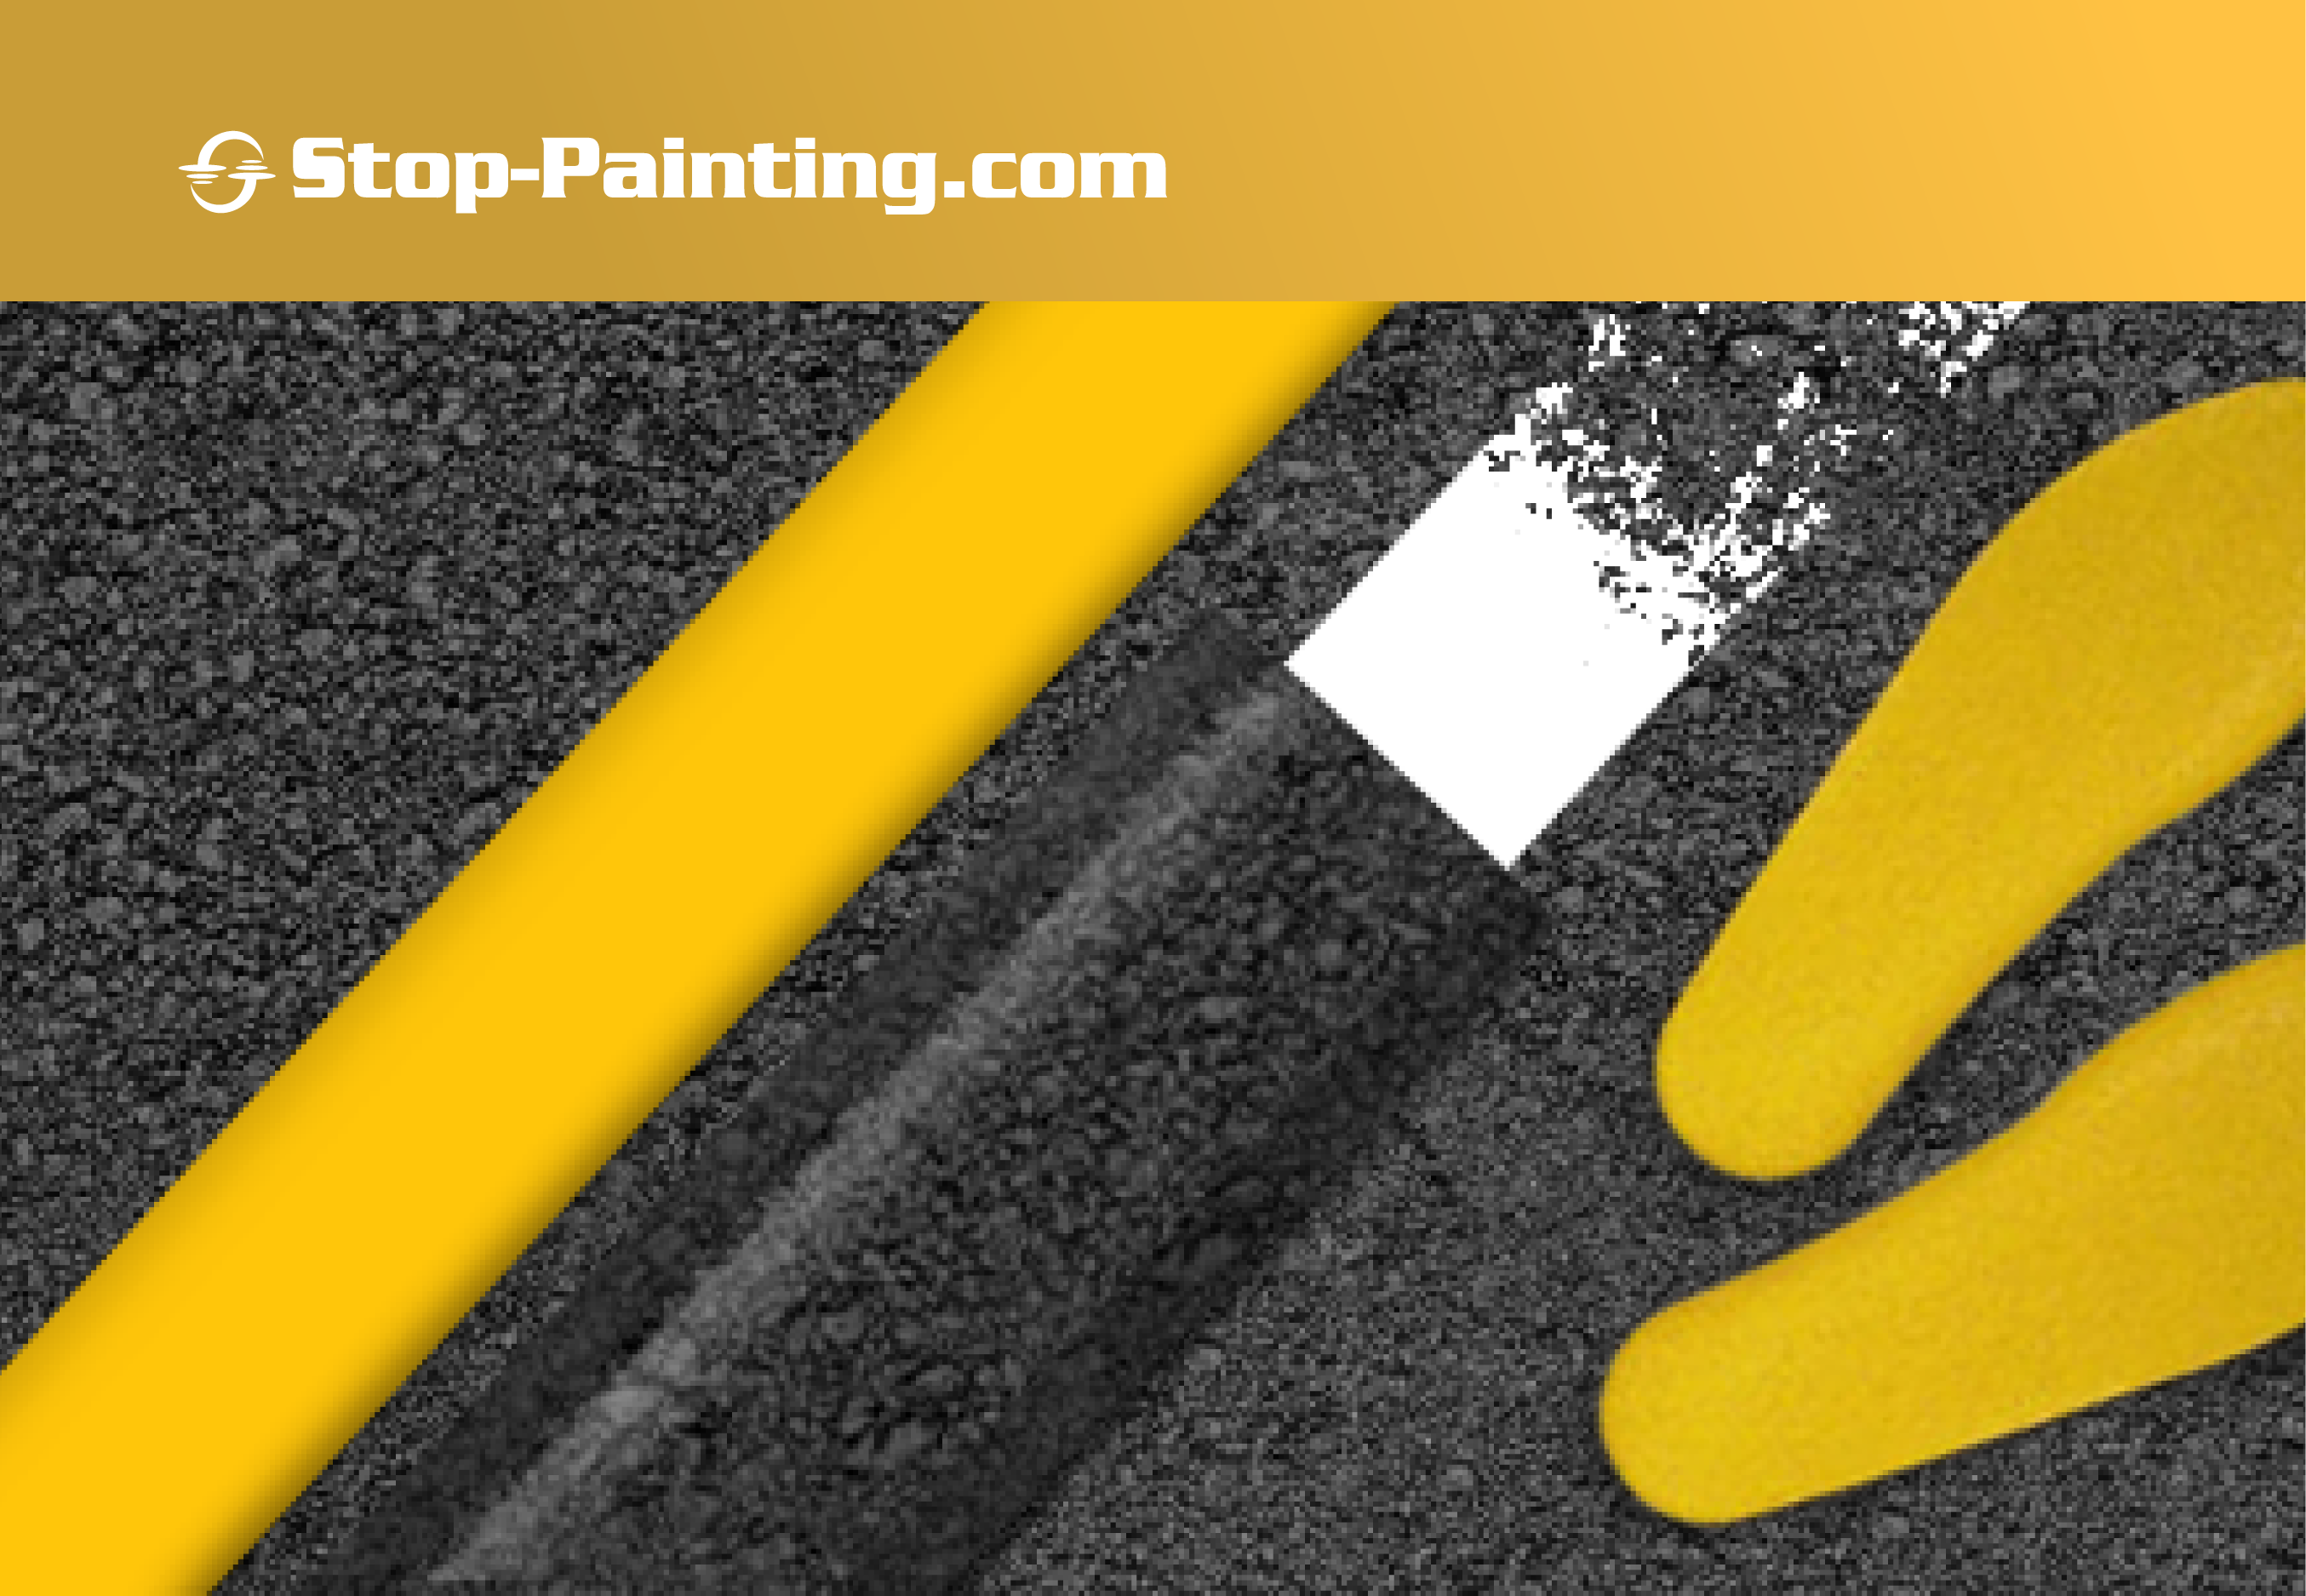 Parking Lot Striping and Pavement Markings for Safety